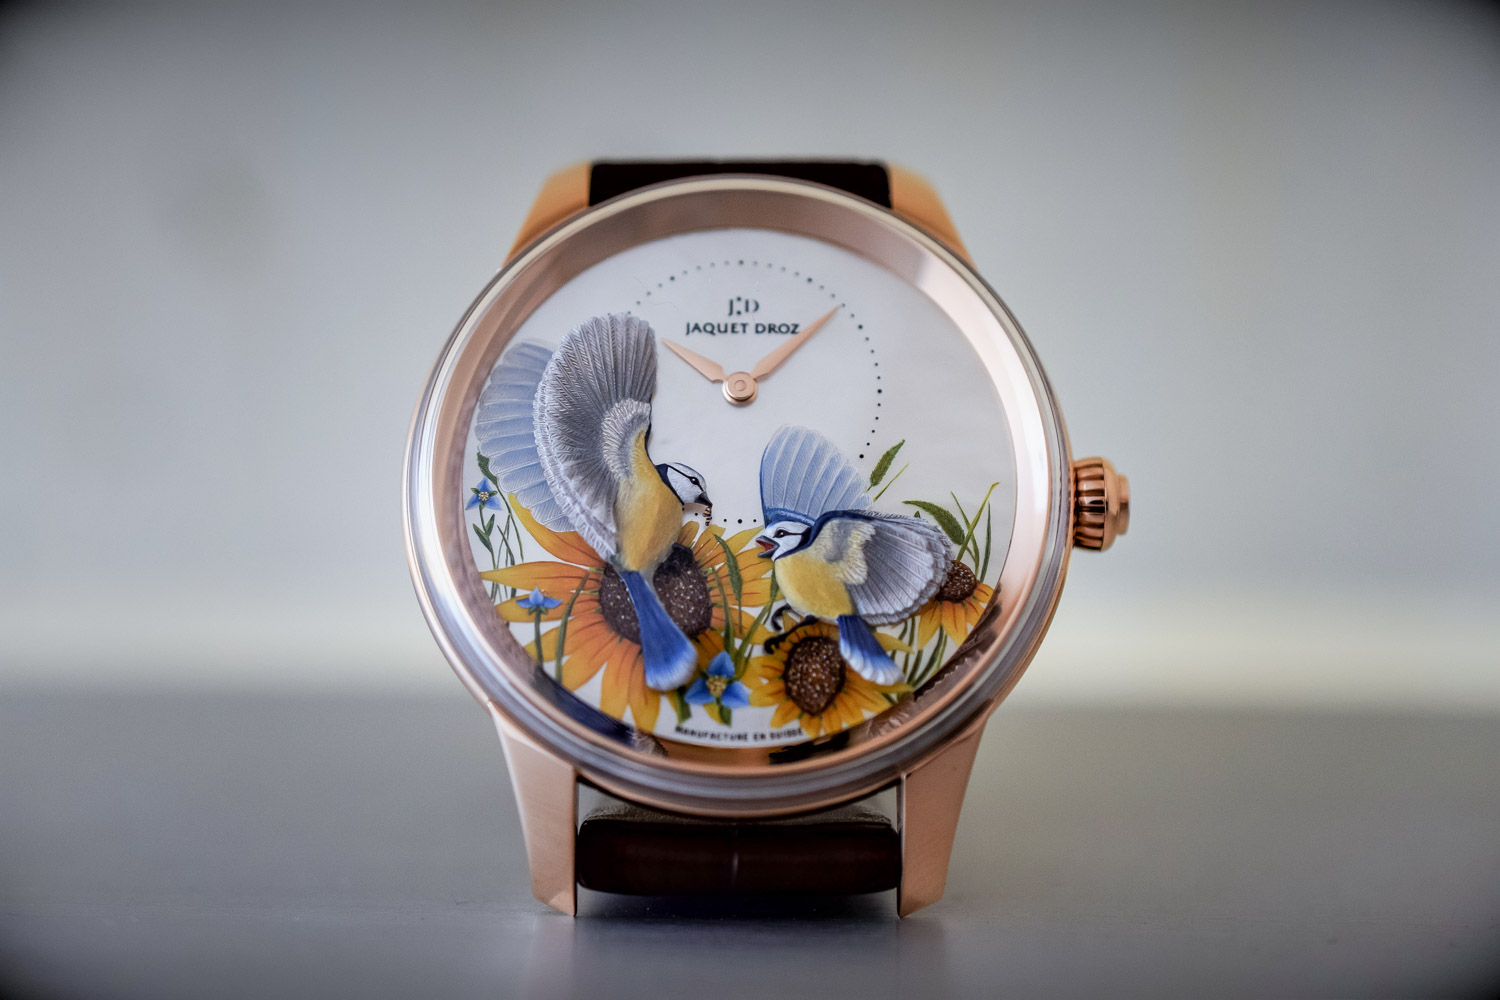 Jaquet Droz Petite Heure Minute Relief Seasons - Baselworld 2017